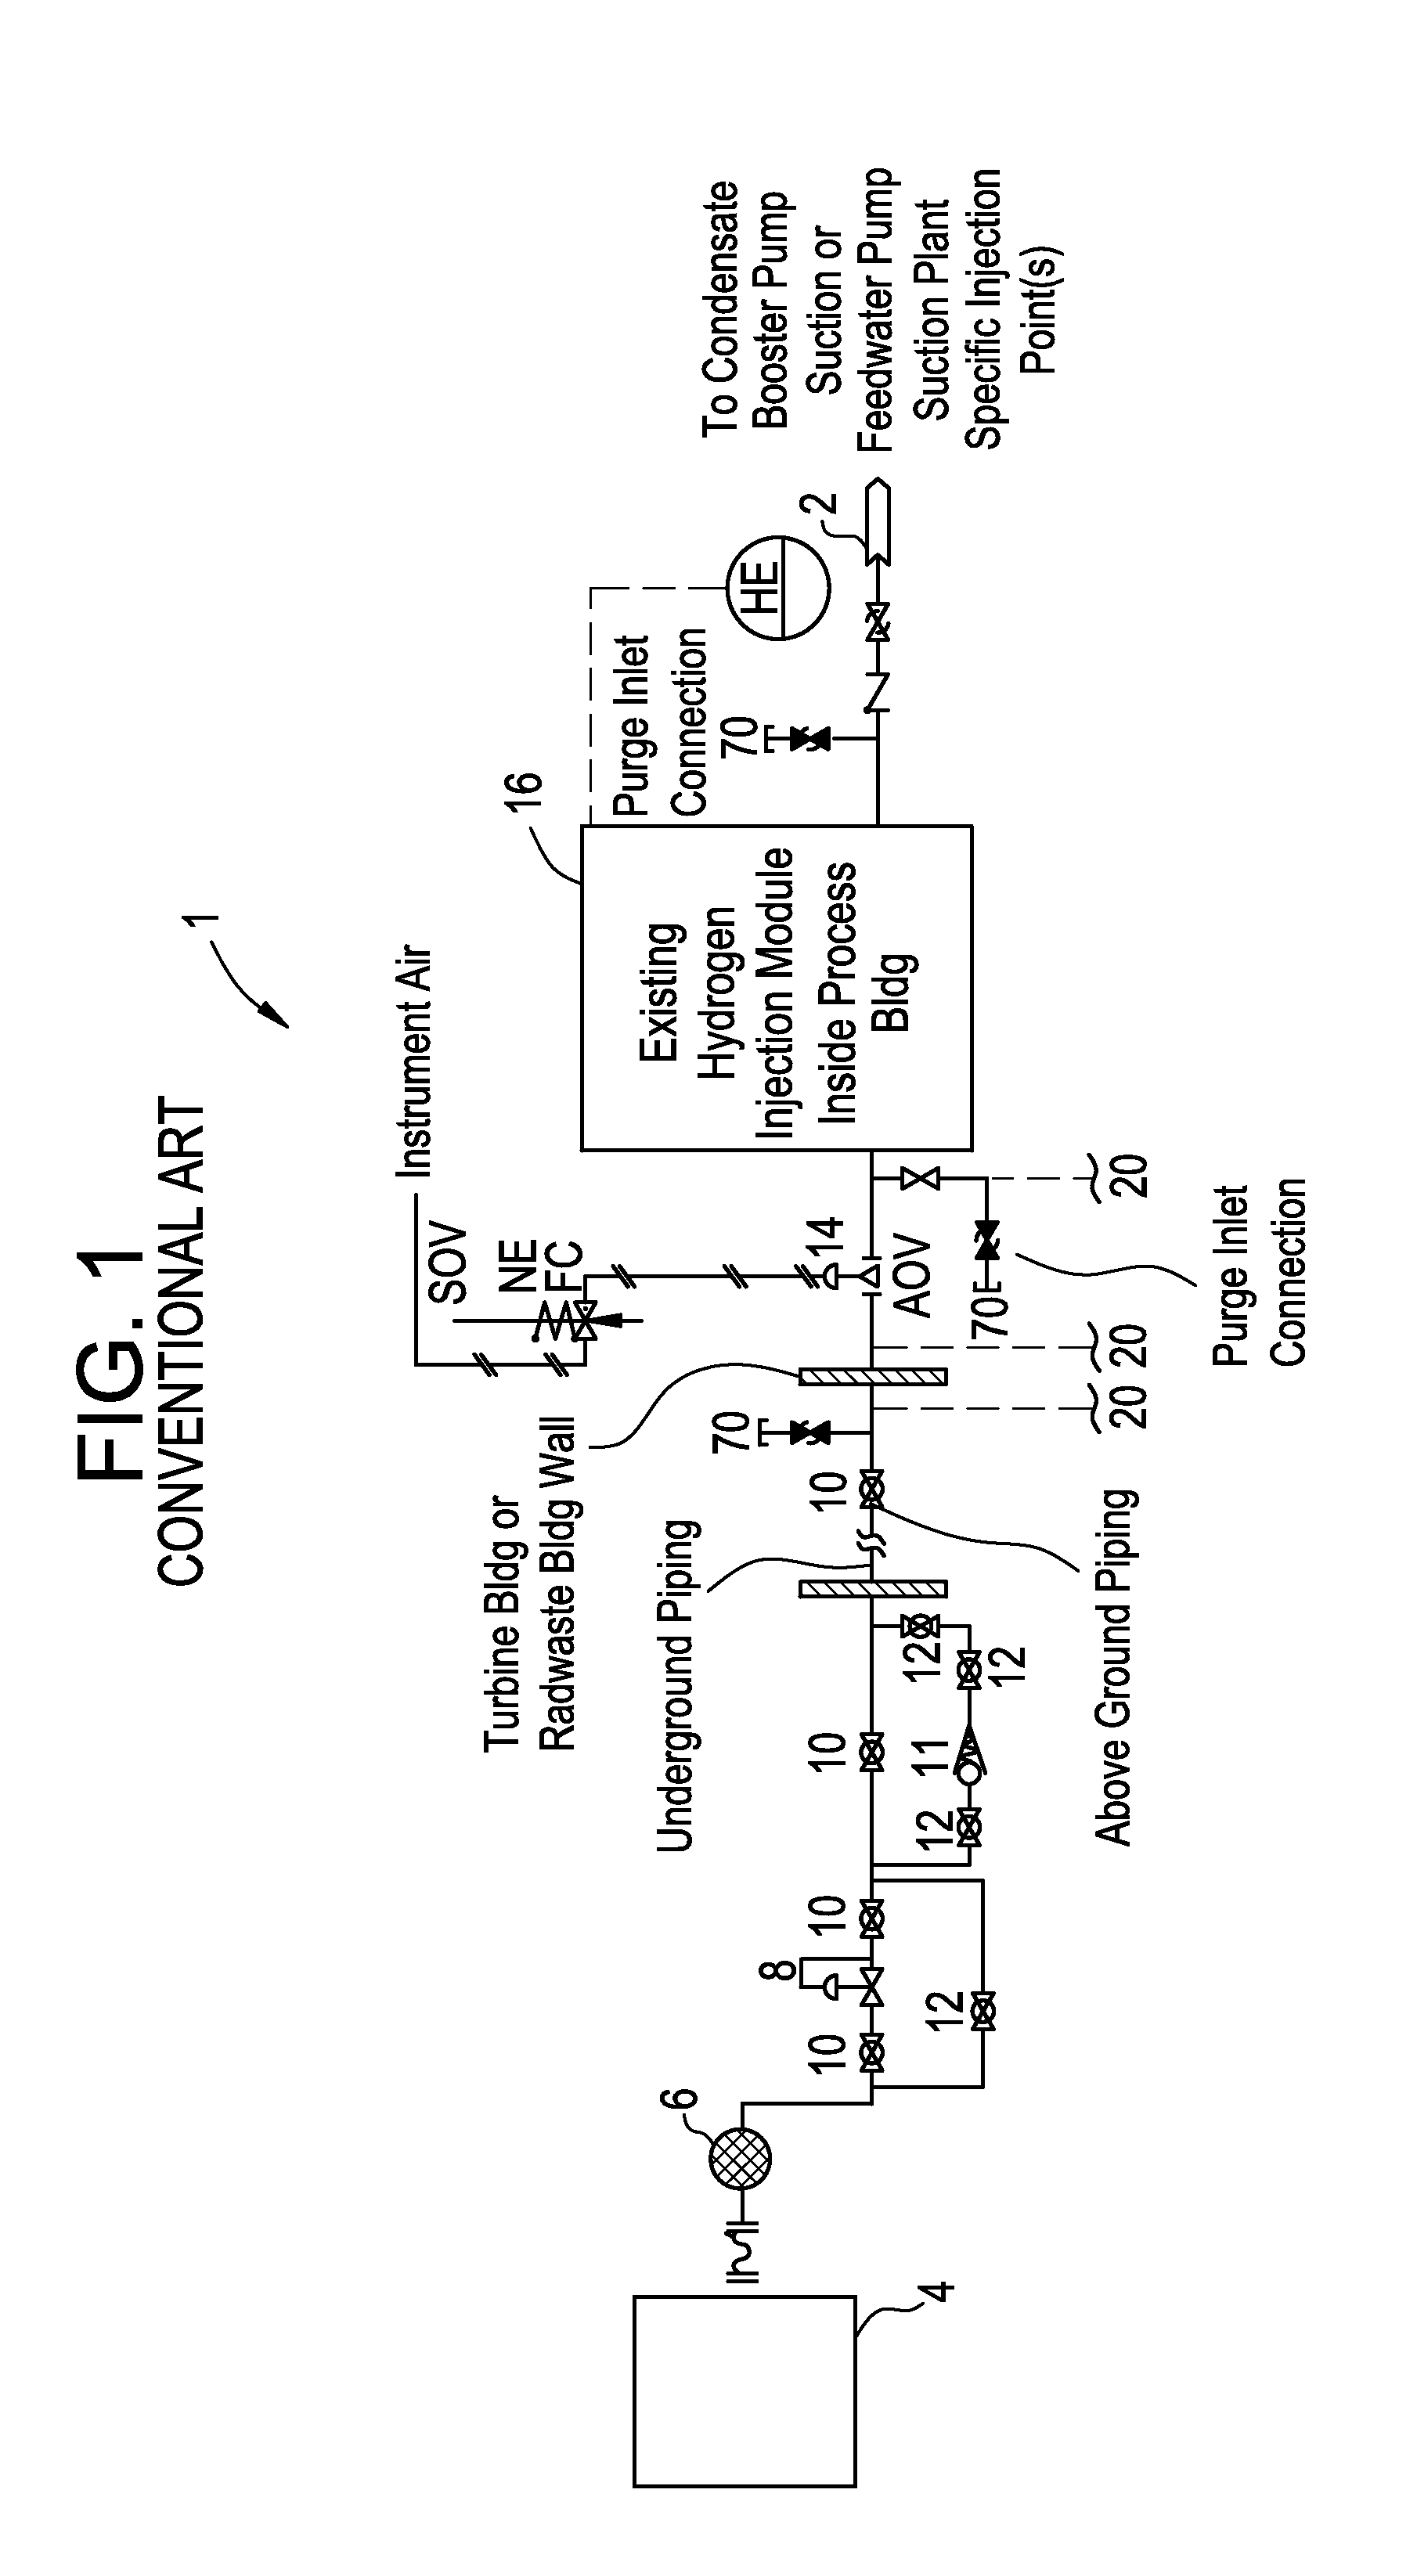 patent us20140177777  shutdown hydrogen injection system for boiling water reactors